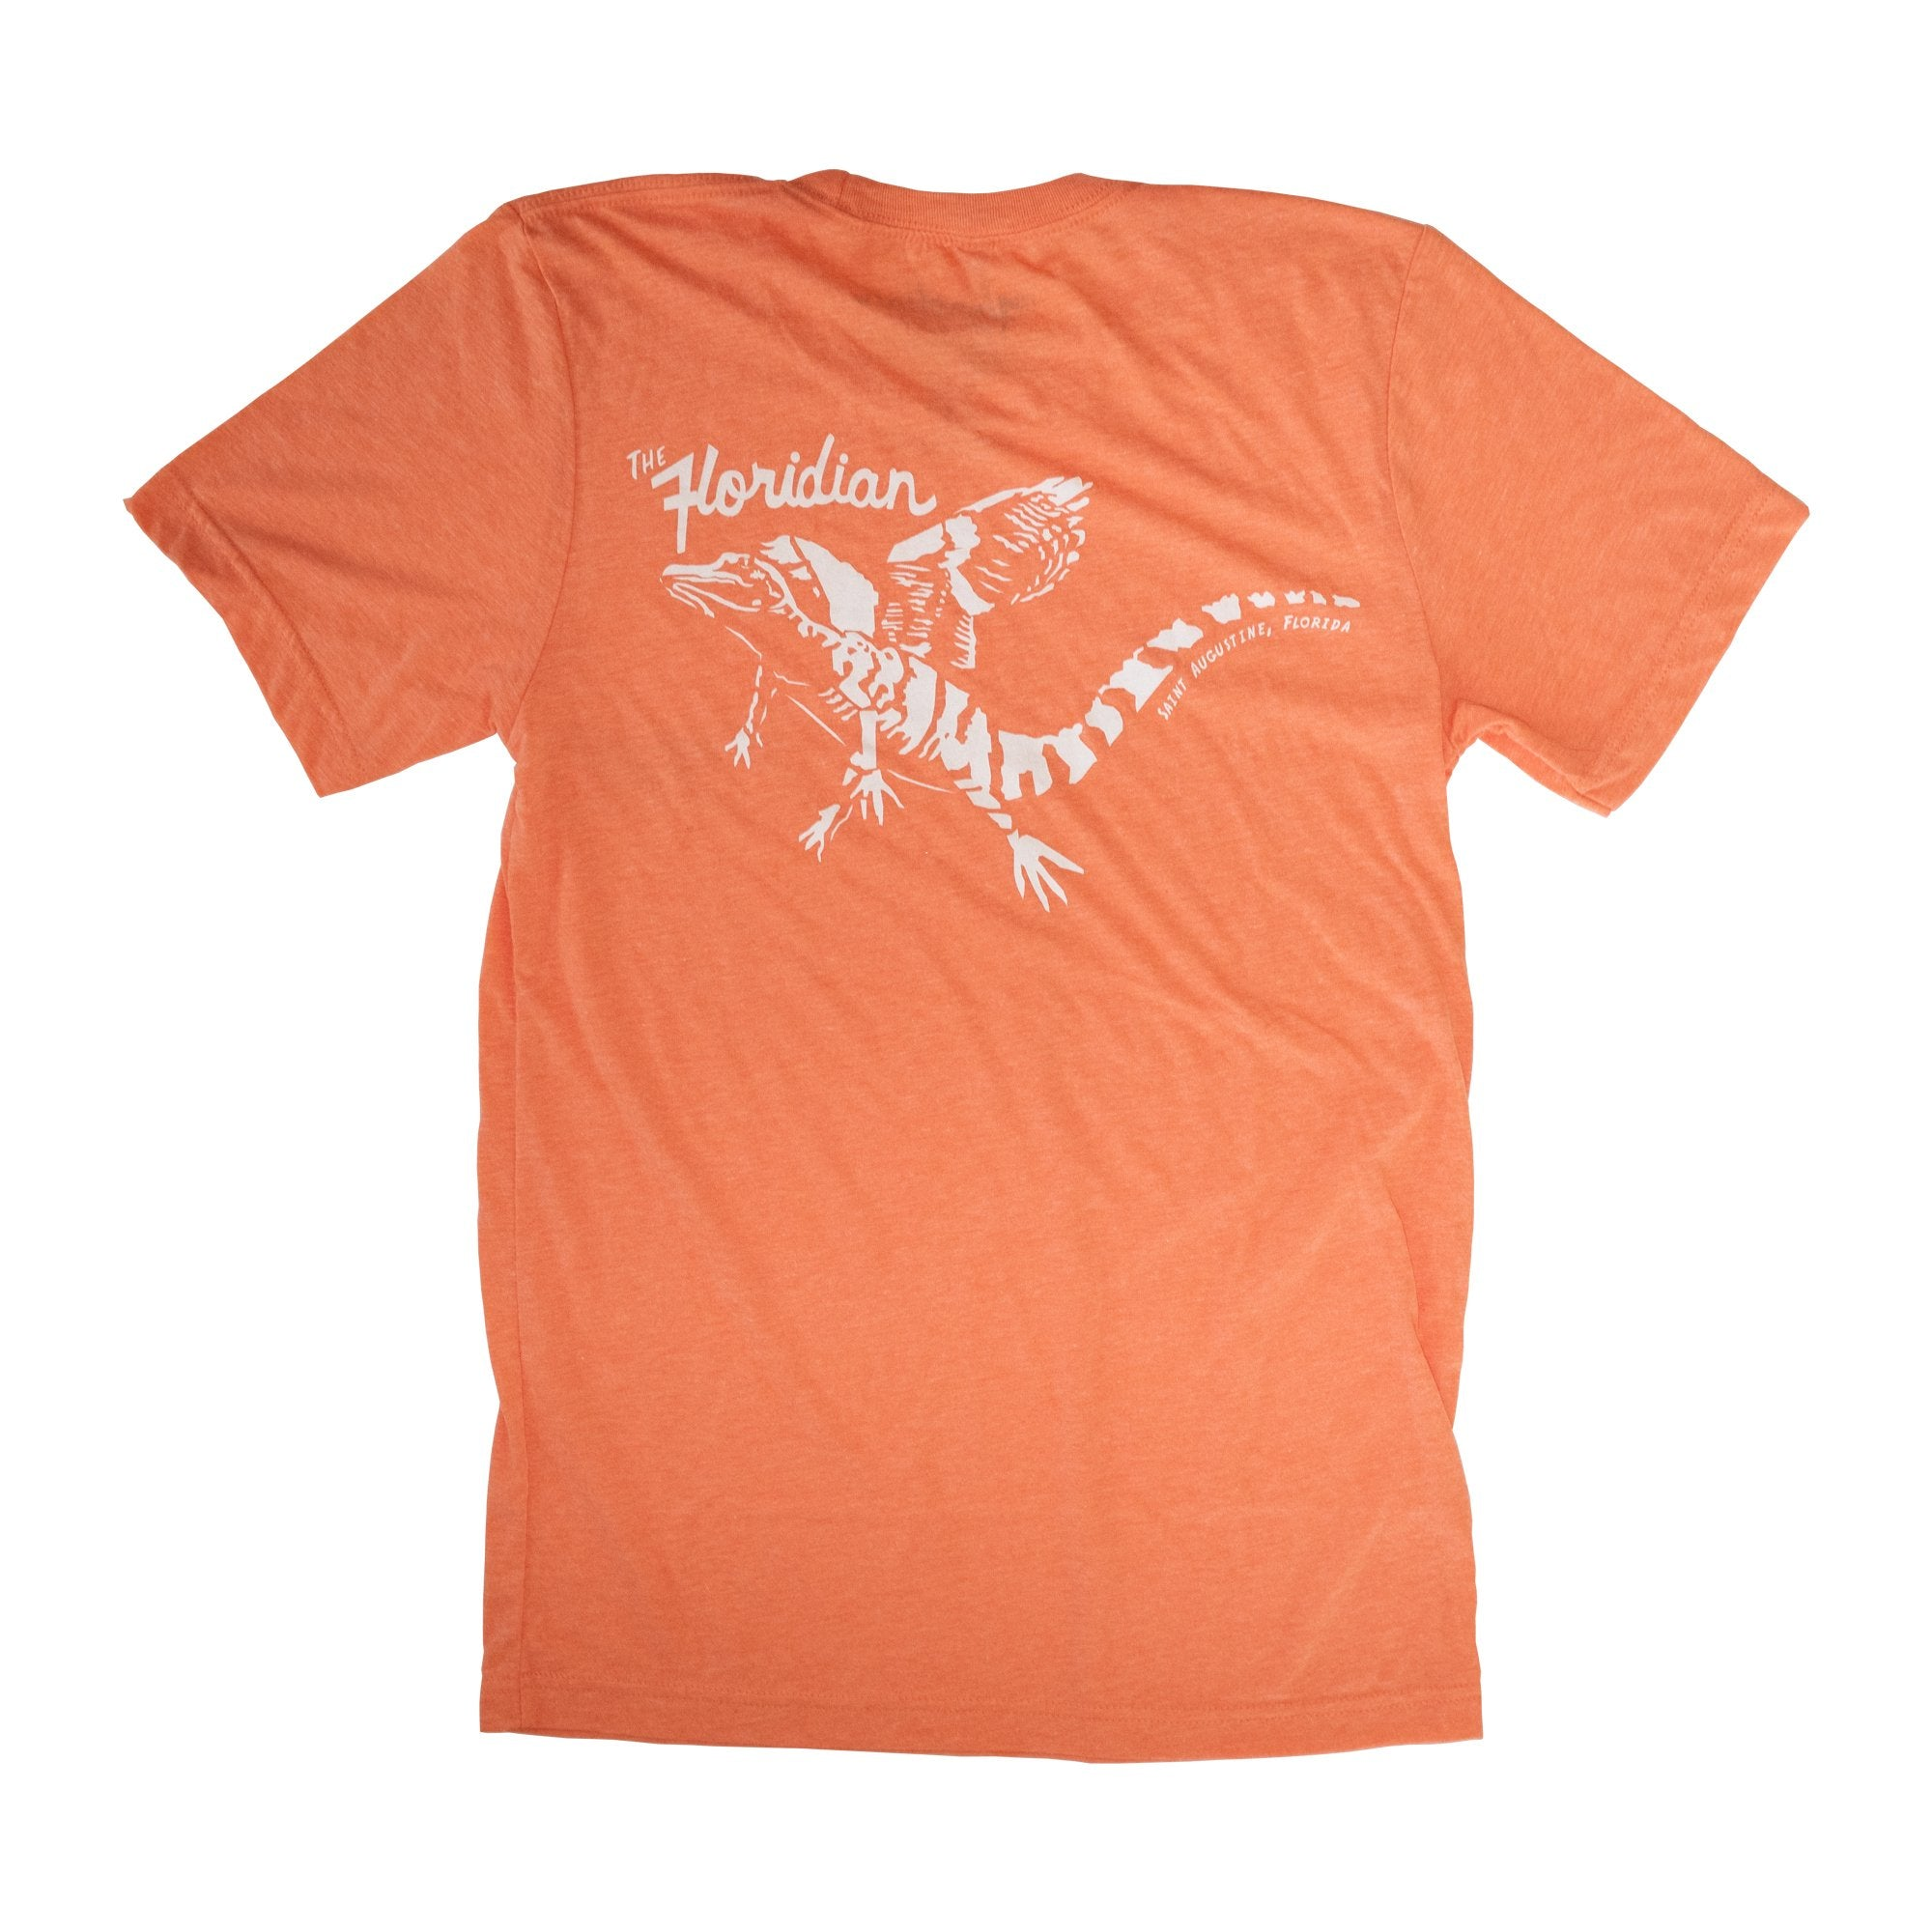 Surf Station The Floridian Flying Gator Men's S/S T-Shirt